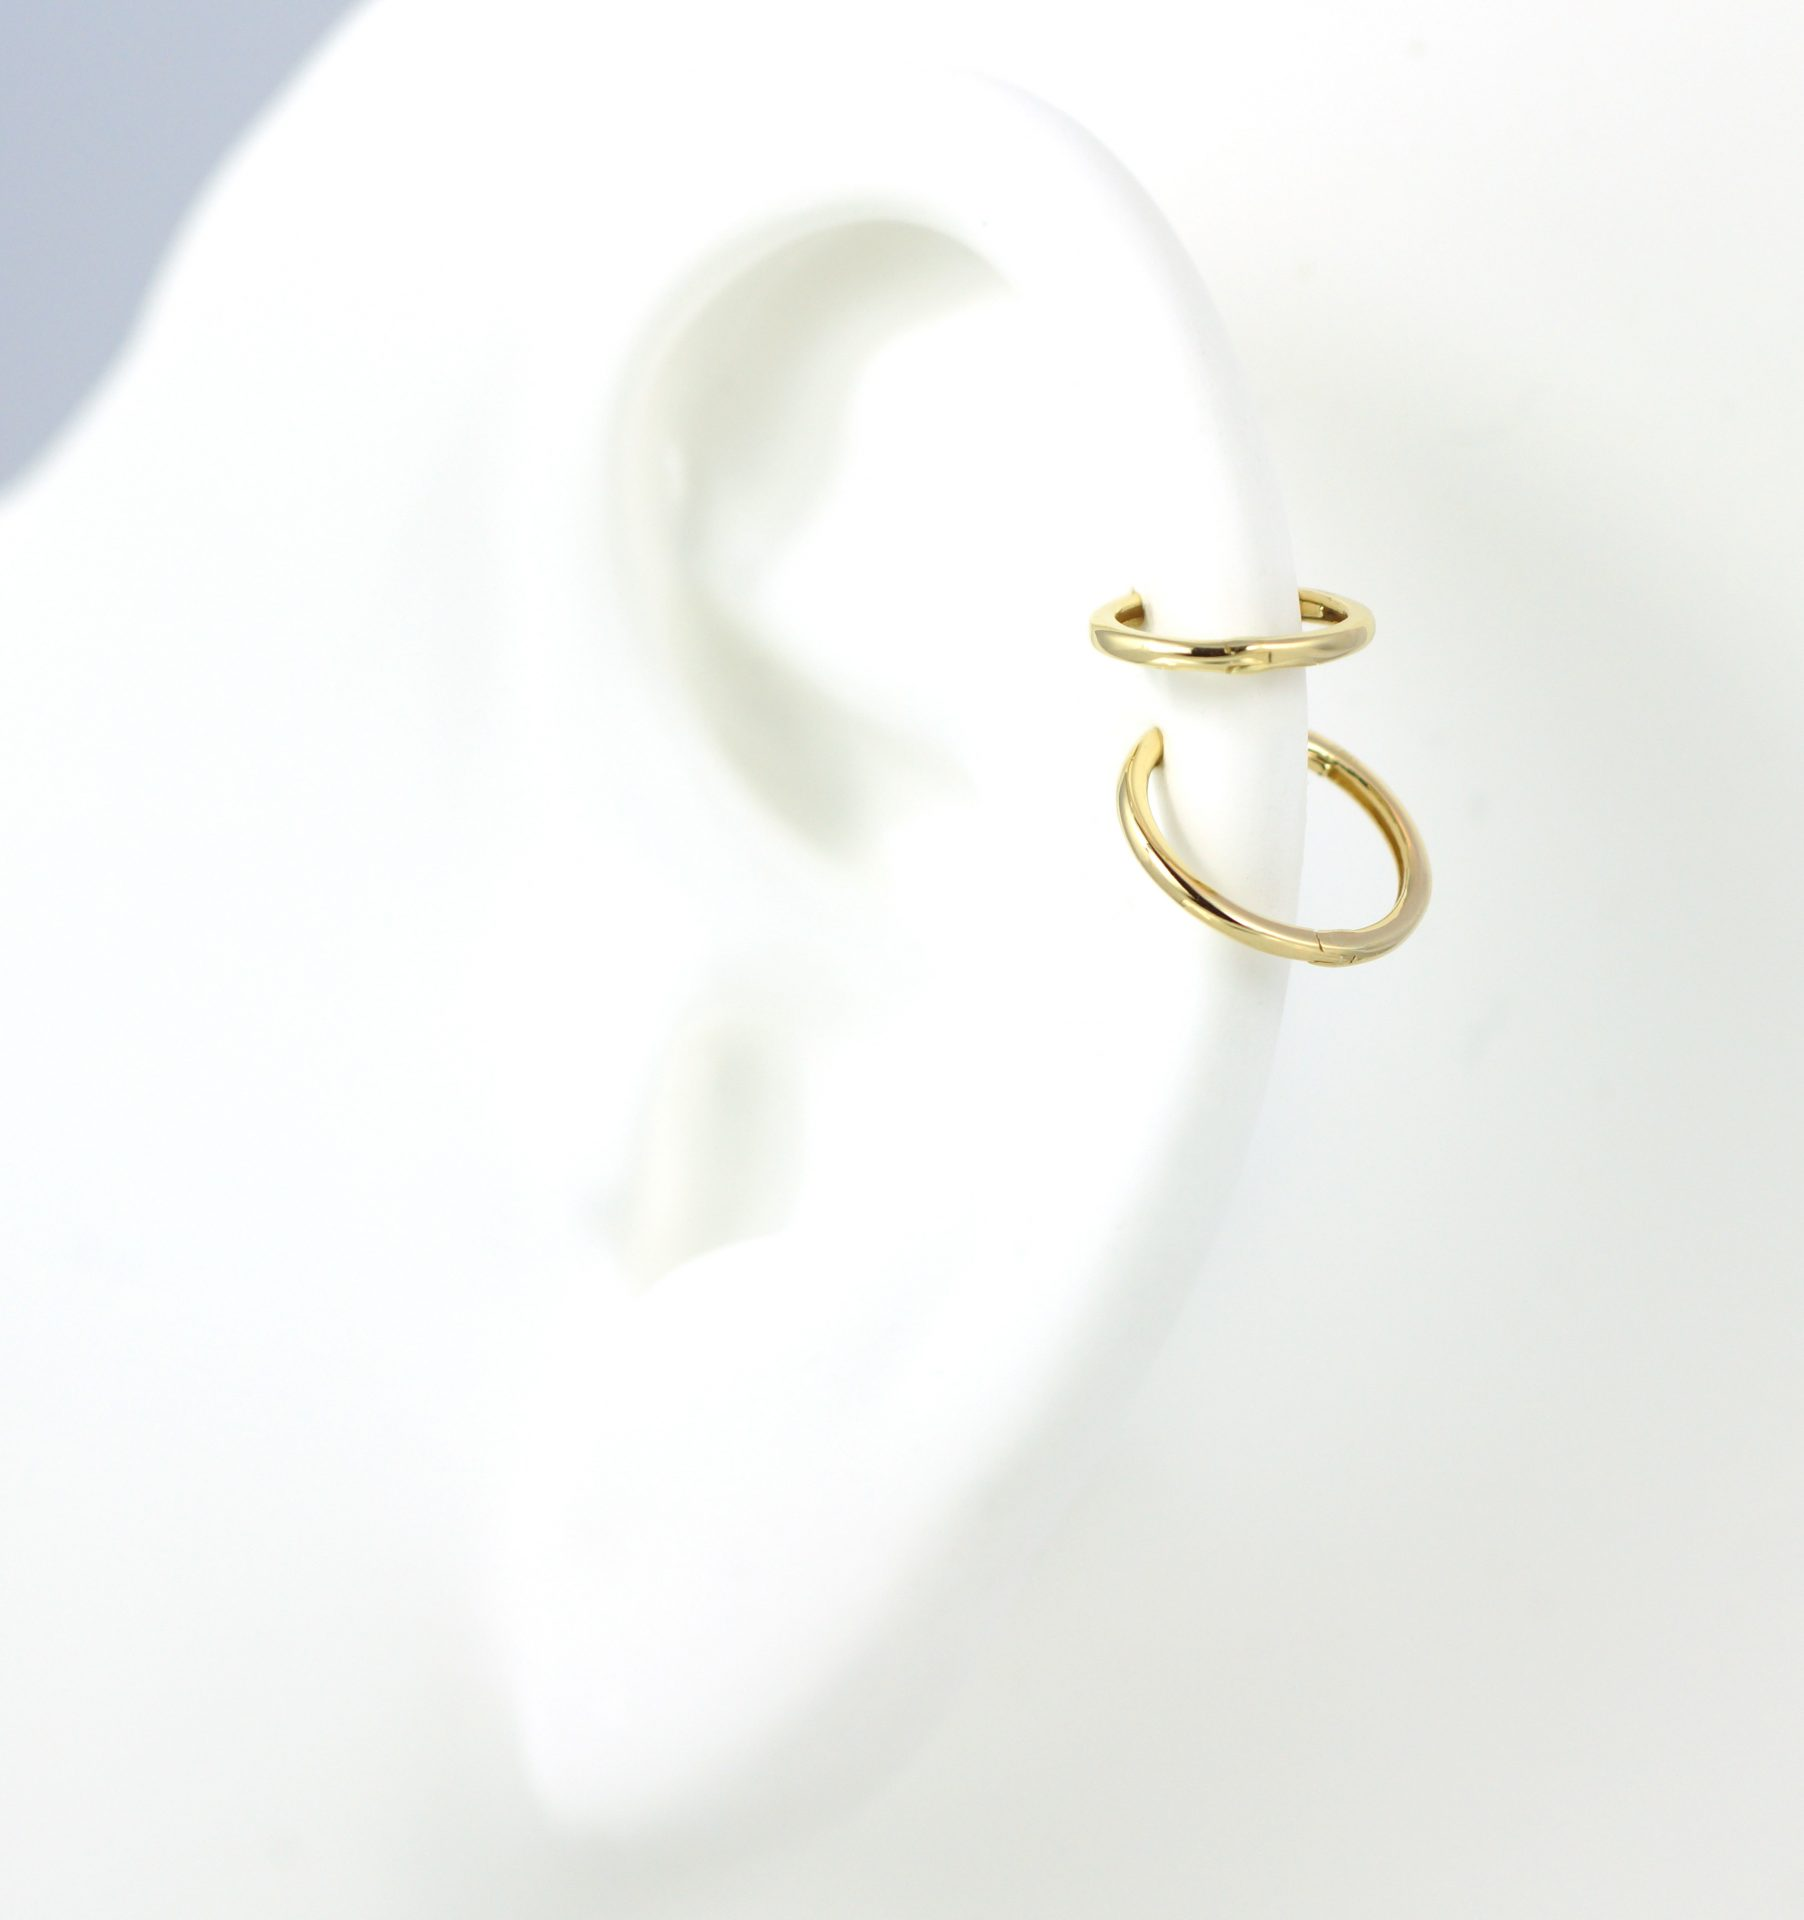 hoop-clicker-18k-yellow-gold-single-huggie-earring-lena-cohen-london